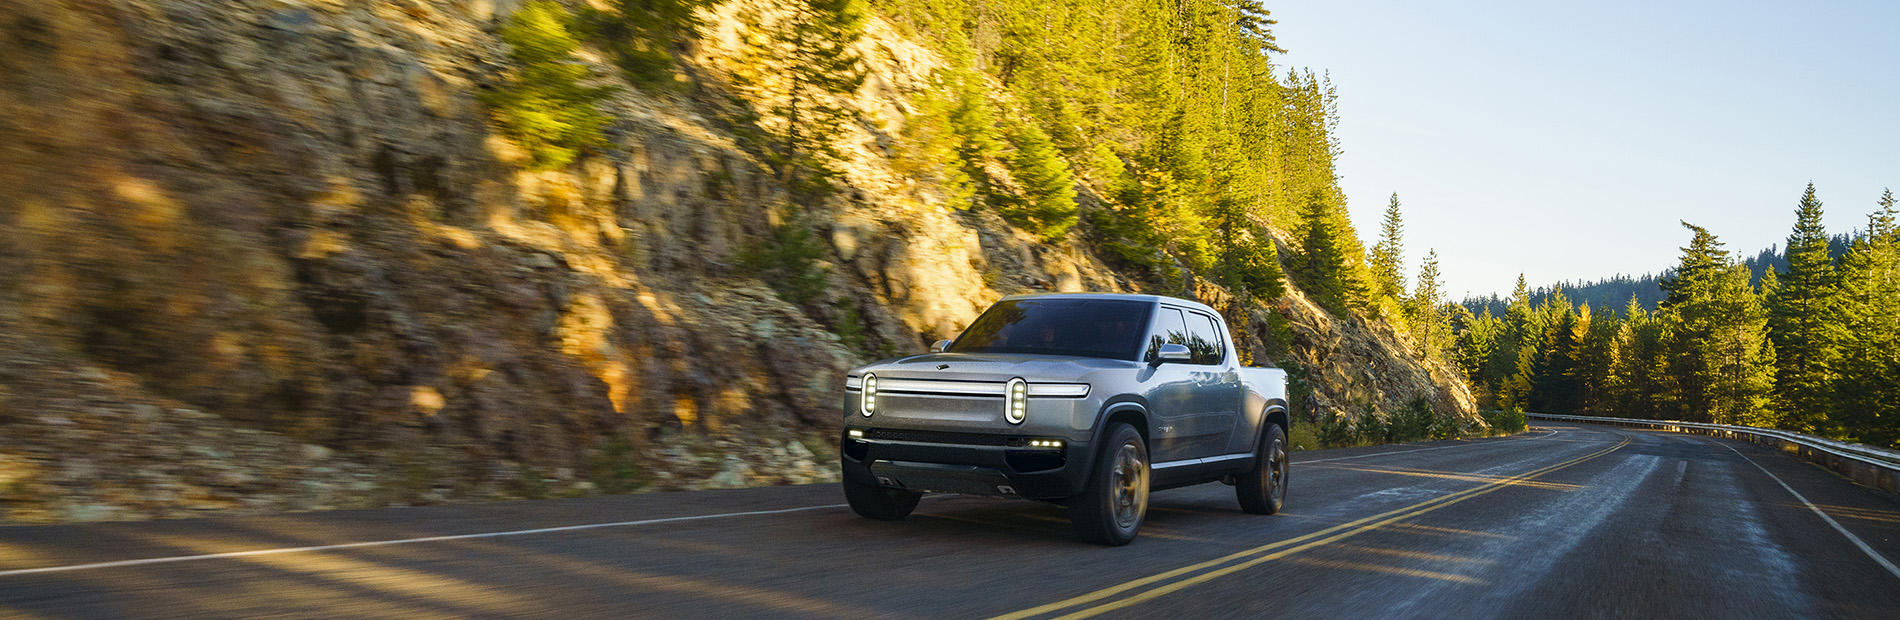 Rivian Automotive all-electric pickup R1T driving down a wooded road.